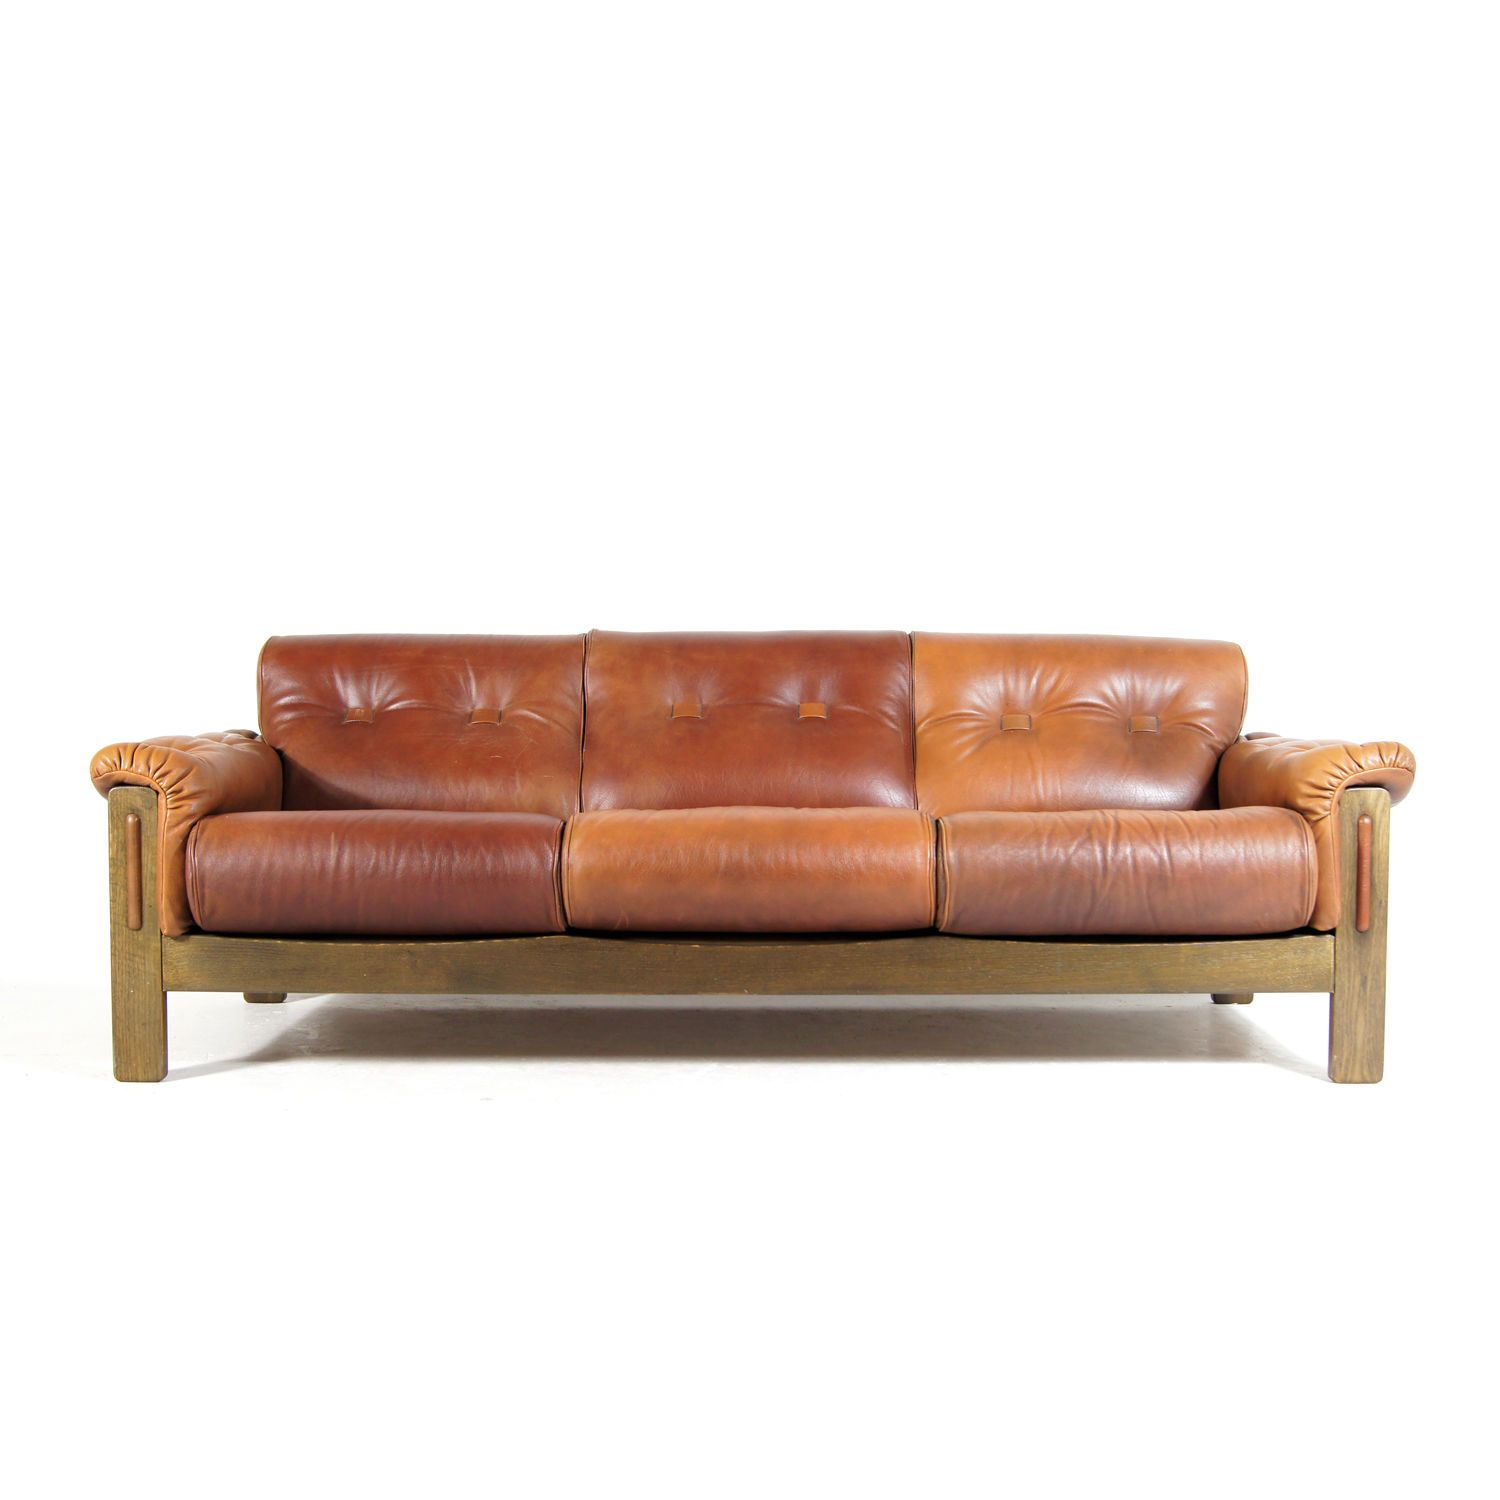 Retro Vintage Danish Scandinavian Walnut 3 Seat Seater Leather Sofa 50s 60s 70s Modern Leather Sofa Leather Sofa Living Room Leather